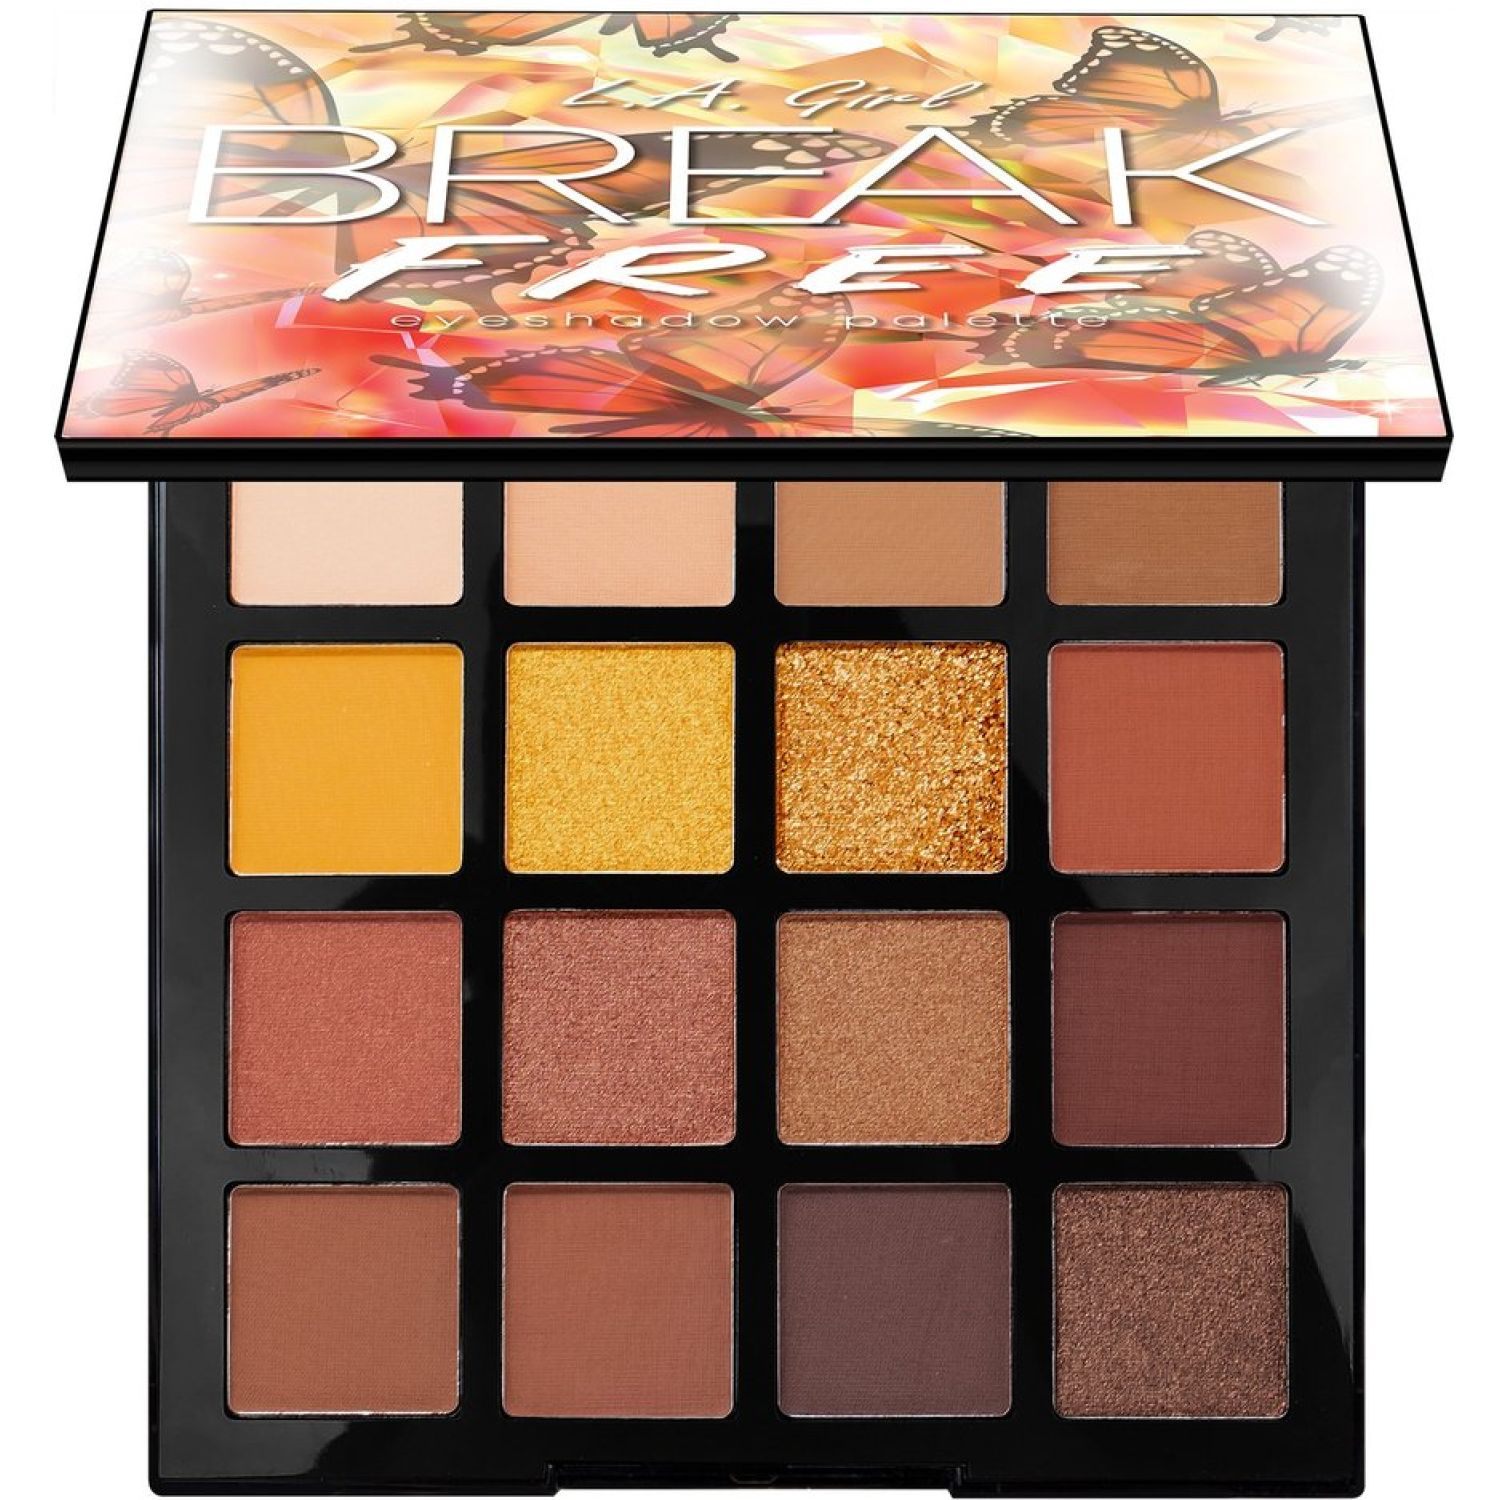 L.a. Girl Break Free Eyeshadow Palette BE YOU Sombras para ojos